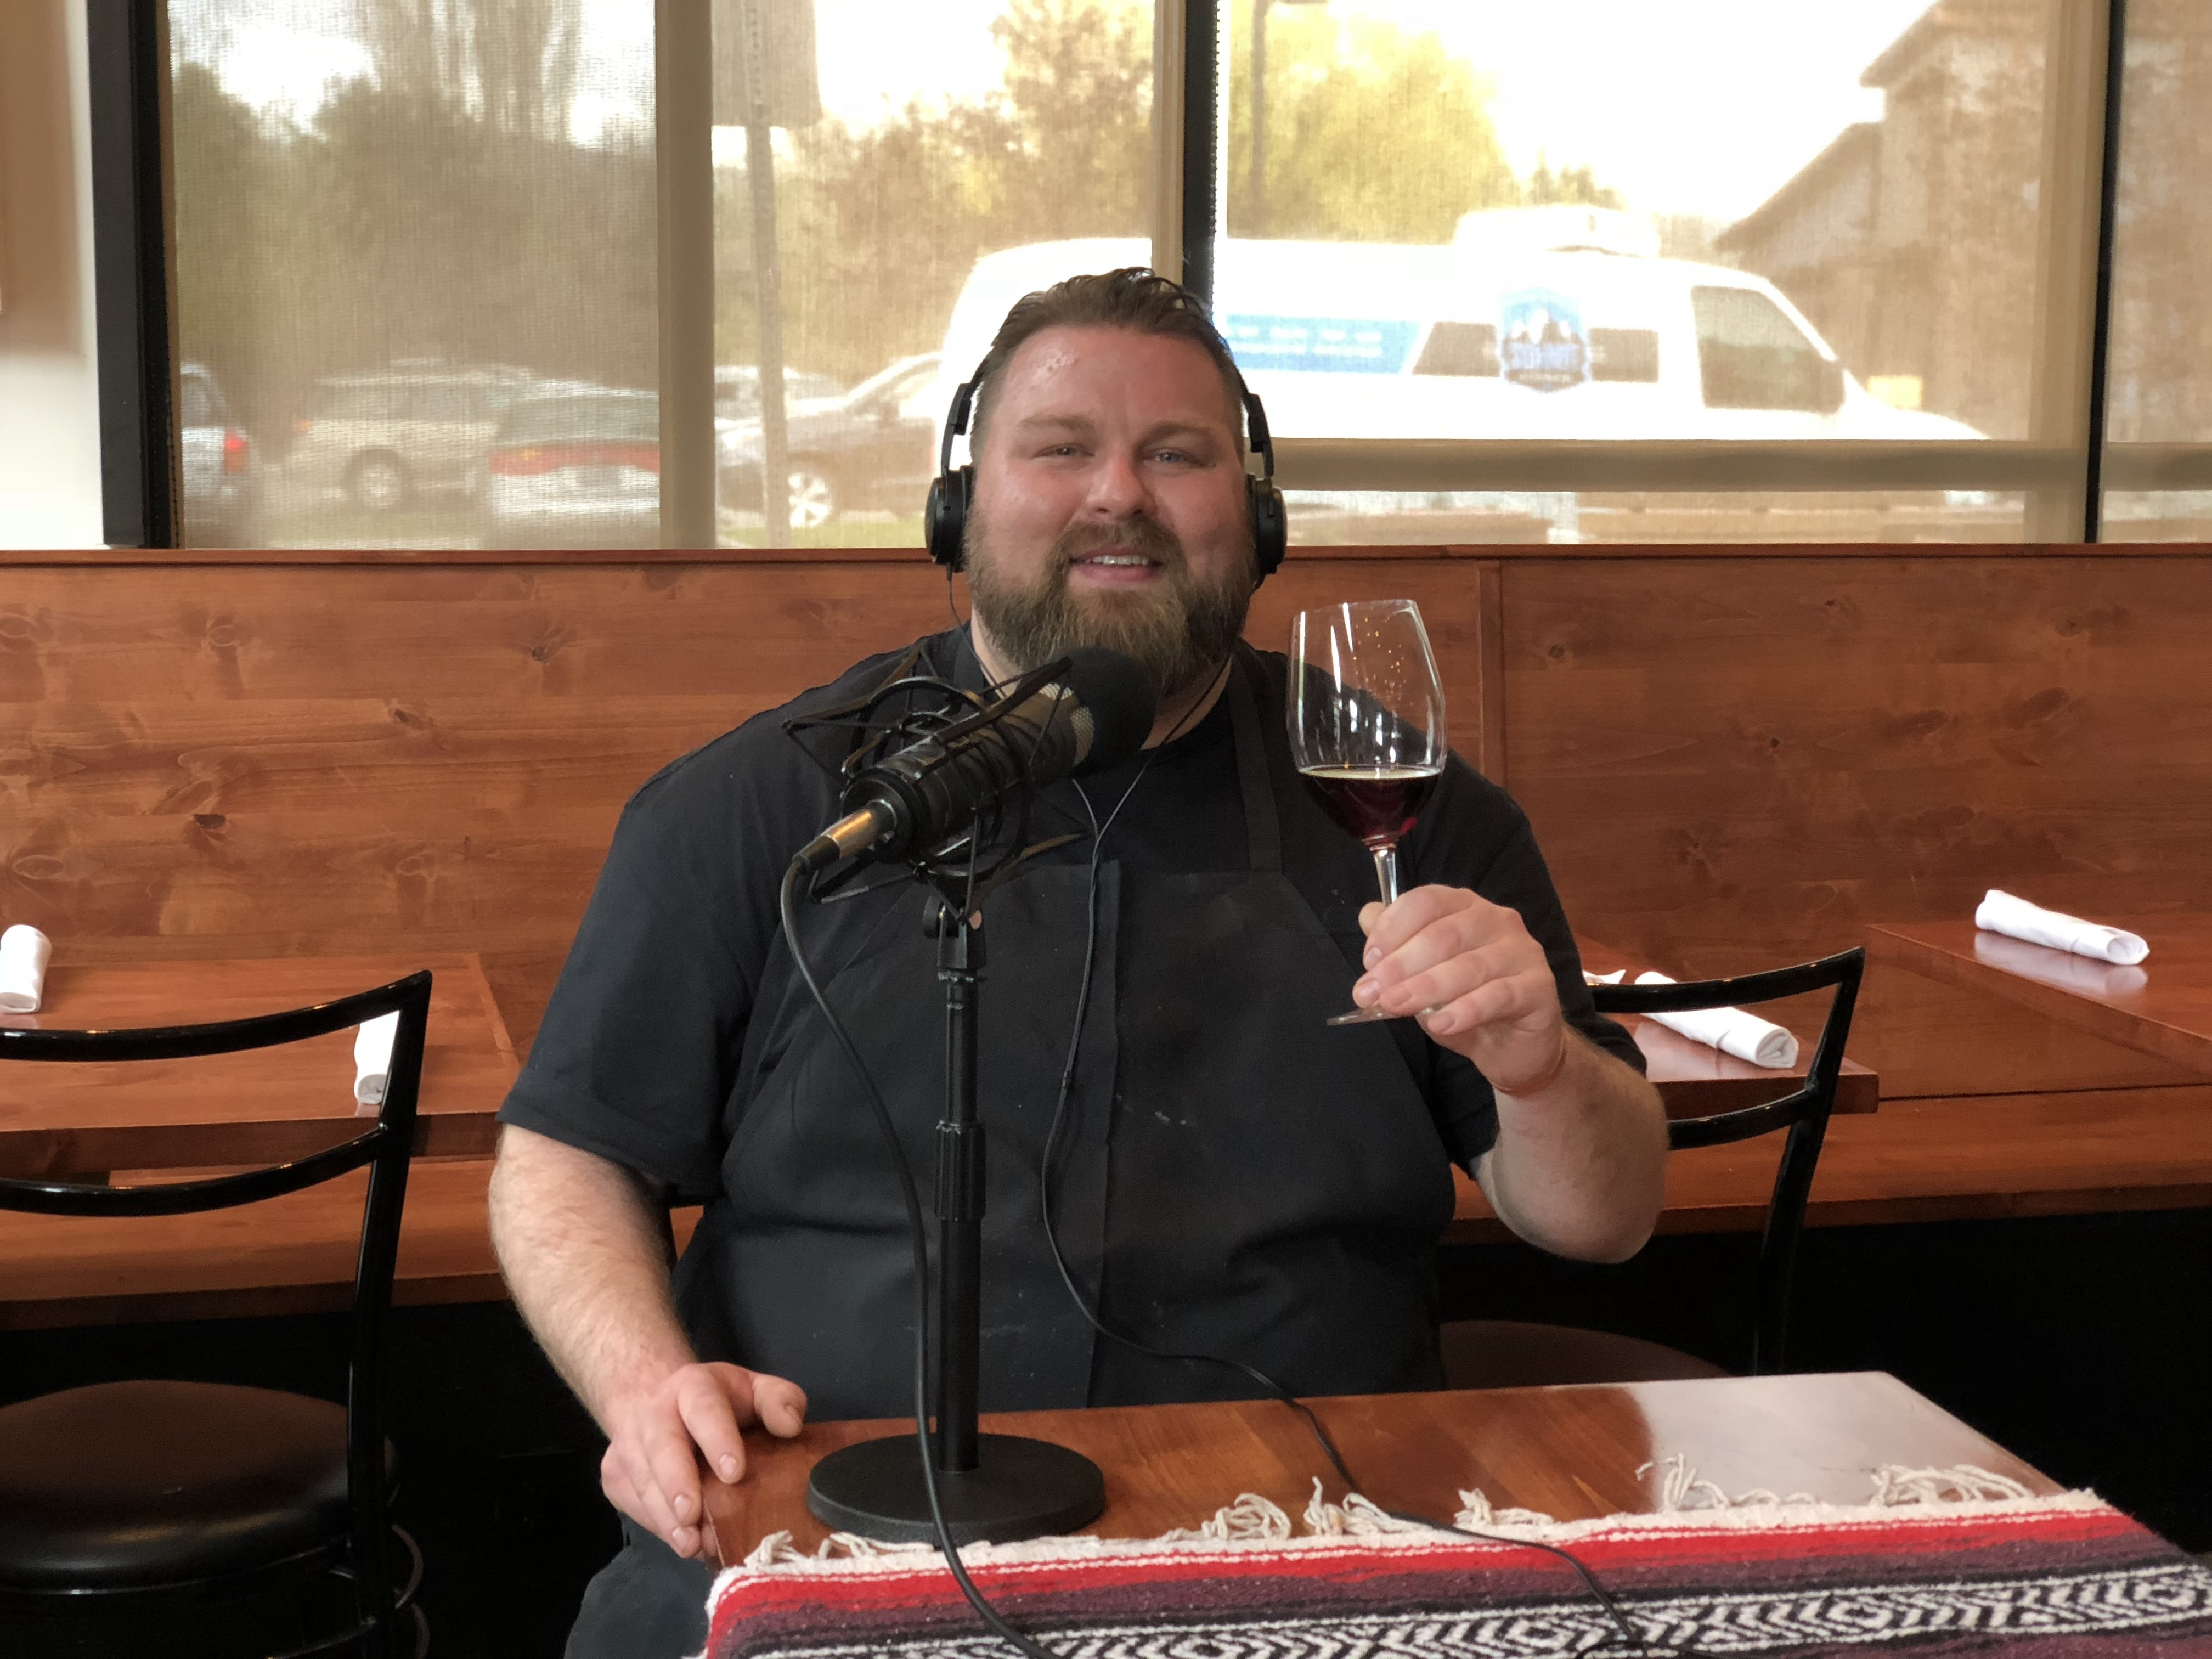 Cory Dragone Blacksmith Italian – Portland Culinary Podcast Episode 39 by Steven Shomler